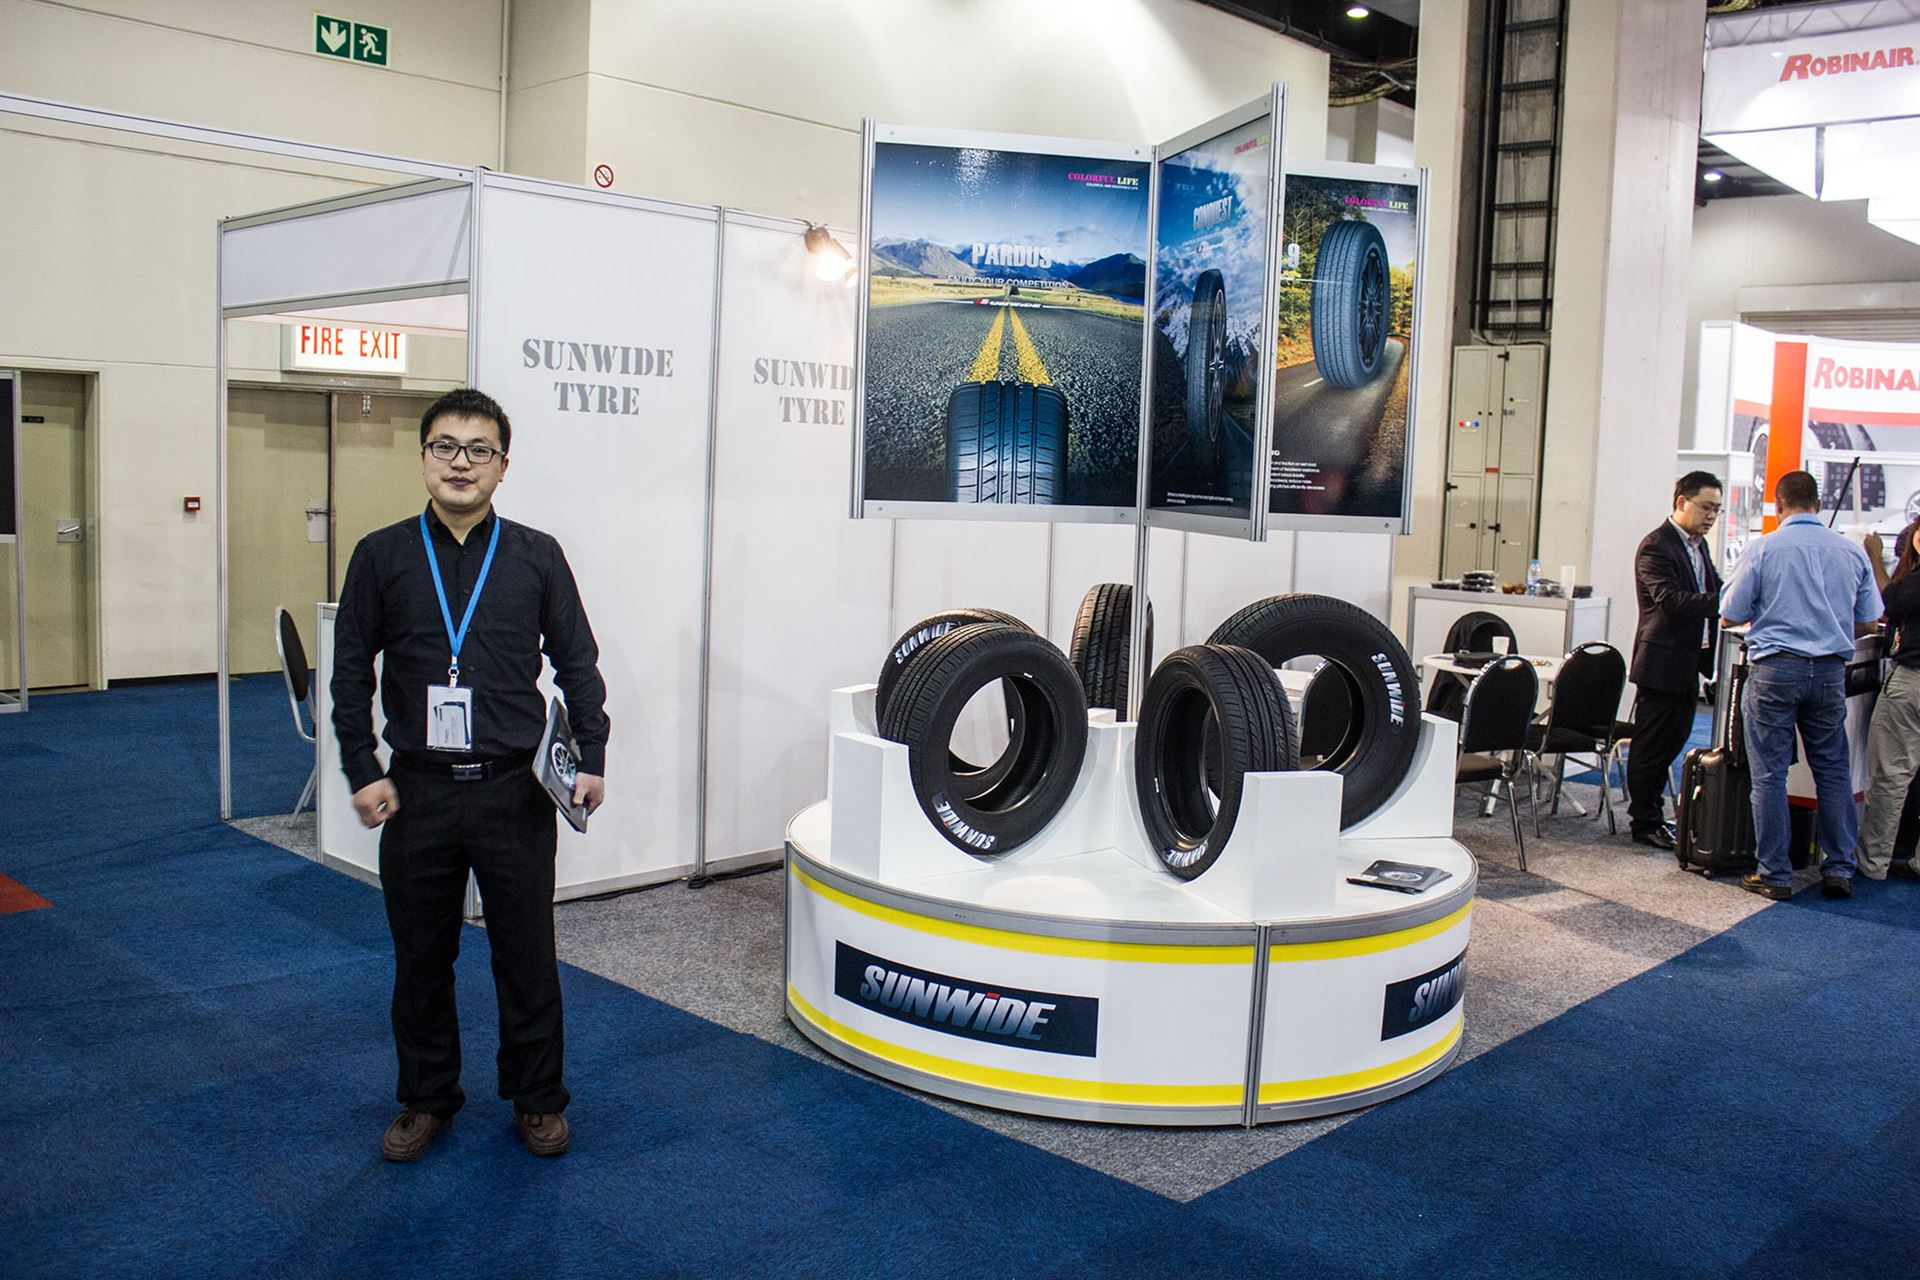 Tyre-Expo-South-Africa-2014-Sunwide-Tyres-01